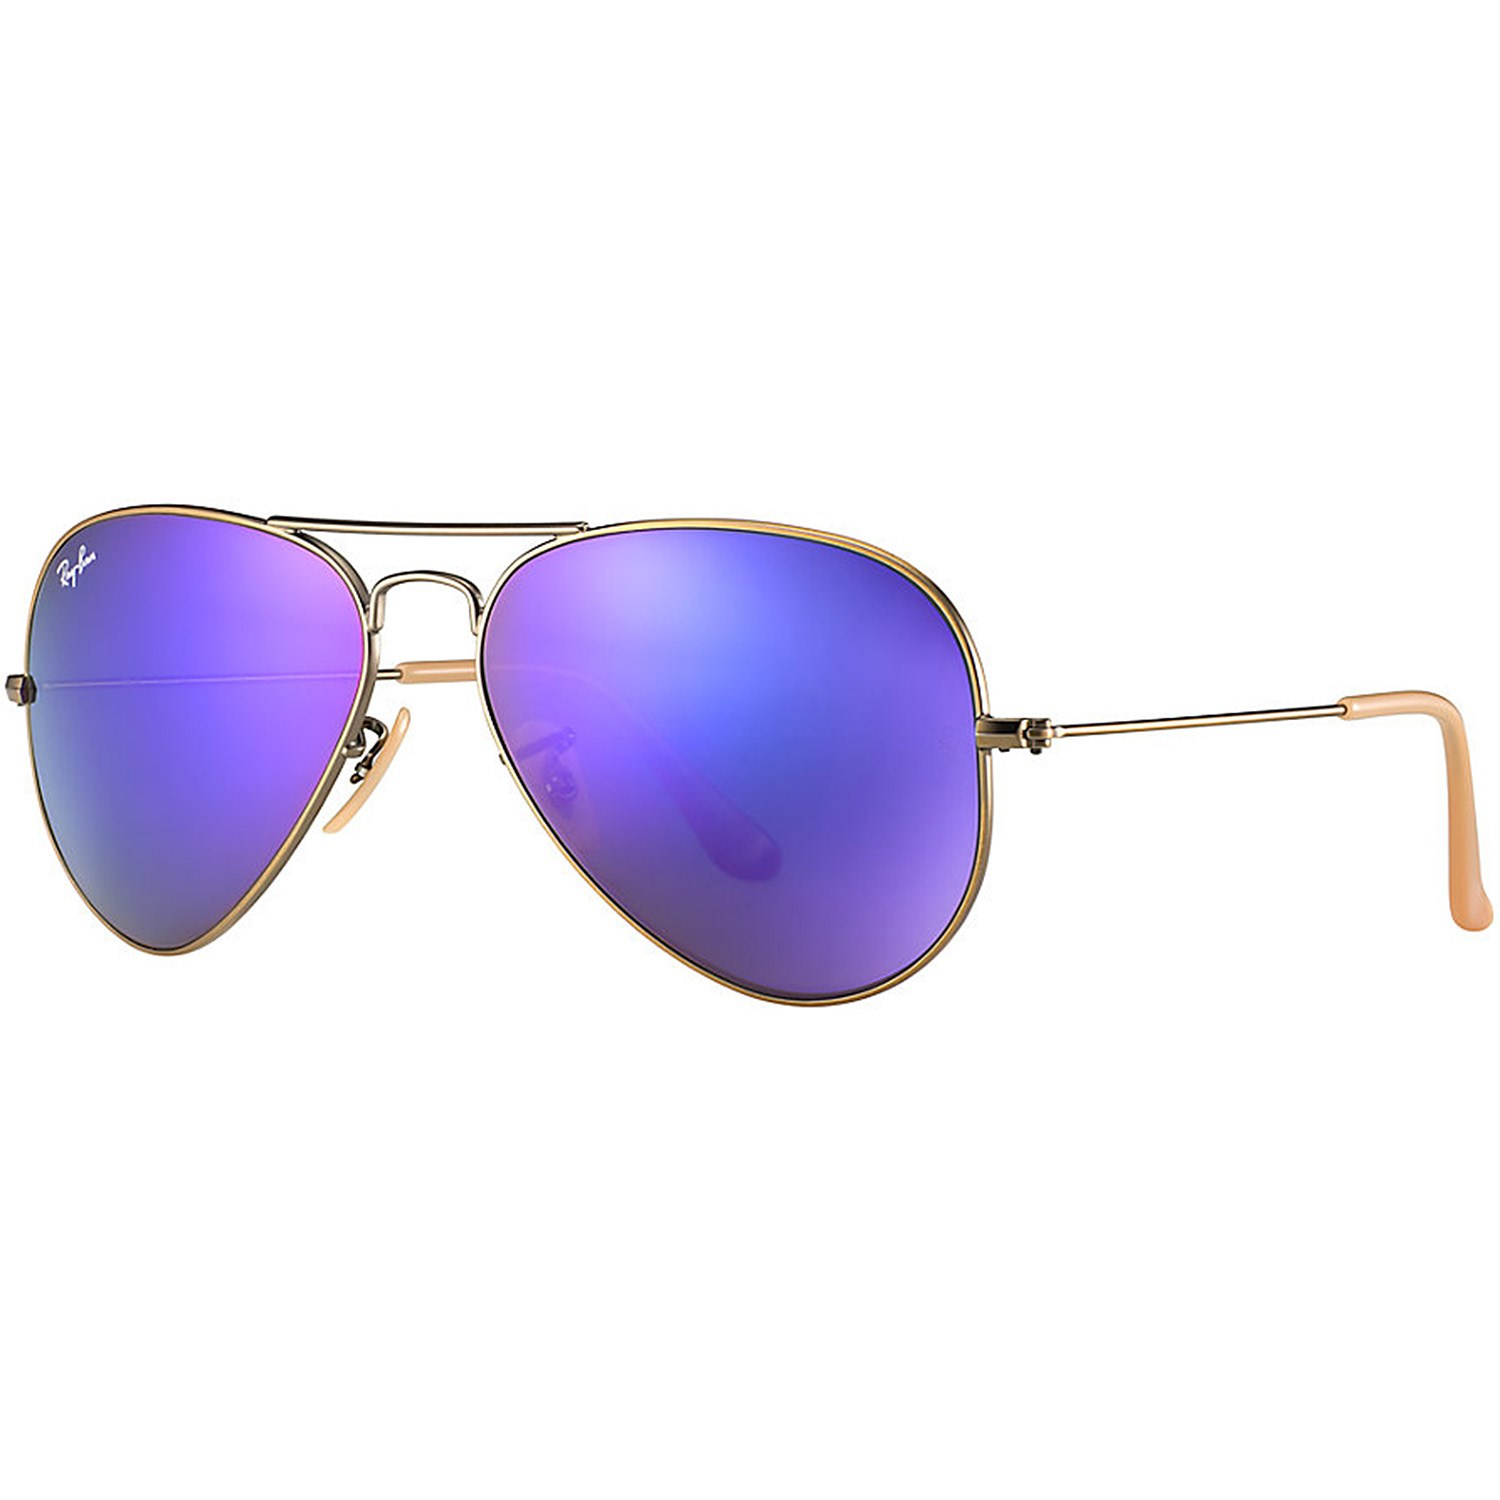 3025 aviator ray ban  Ray Ban RB 3025 Aviator Large Metal 58 Sunglasses